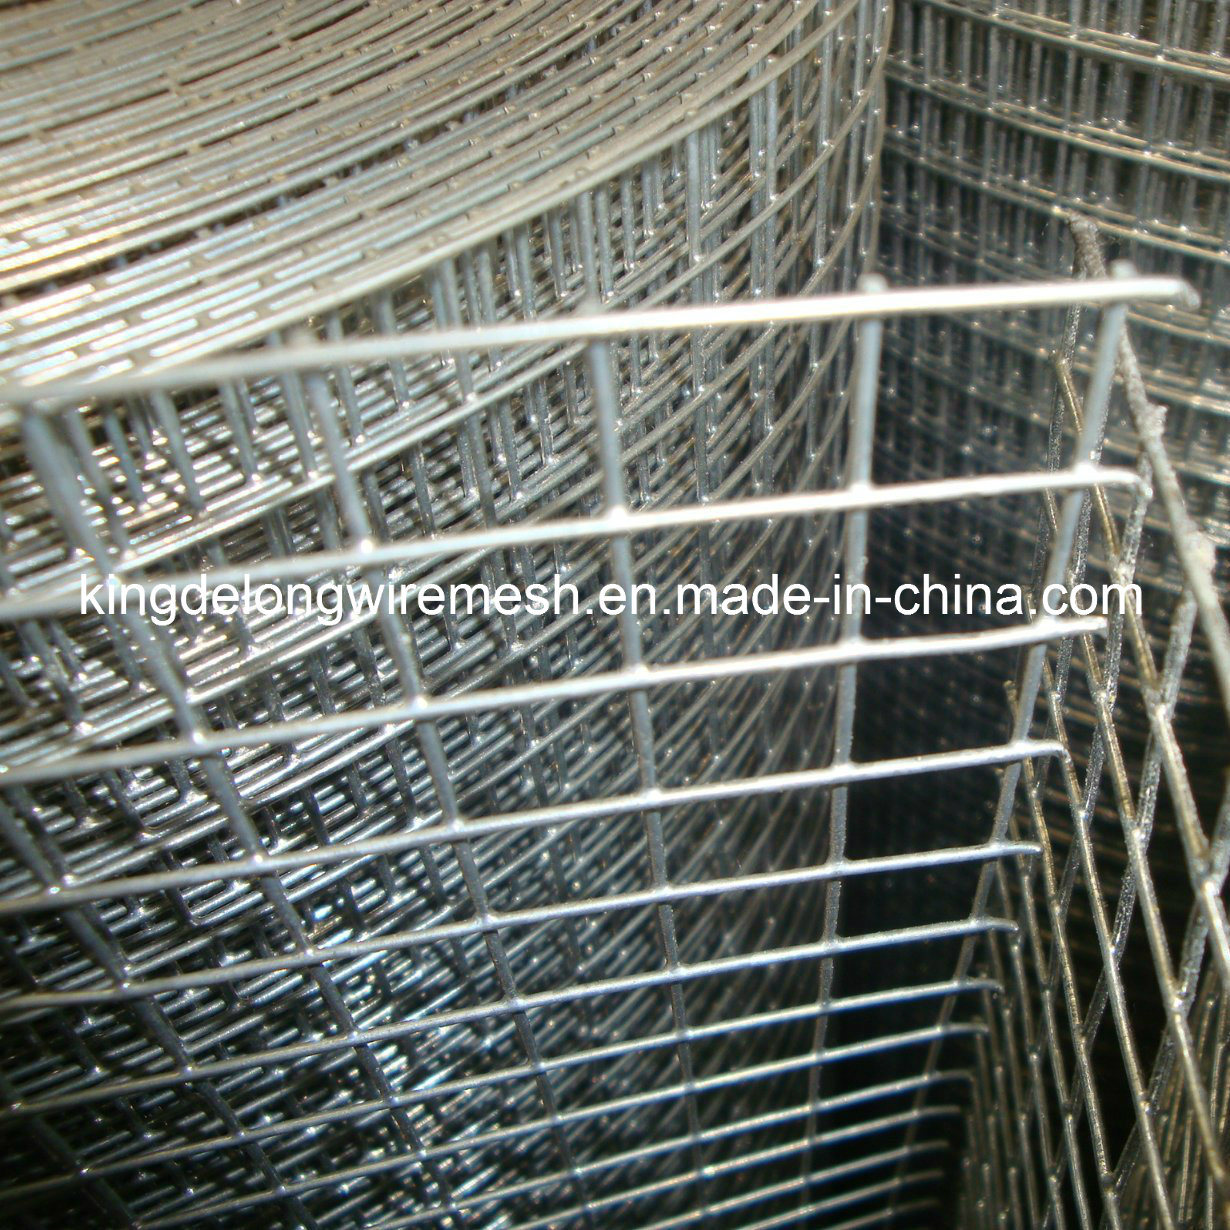 China 4X4 Welded Wire Mesh Panel (kdl-84) - China Welded Wire Mesh ...